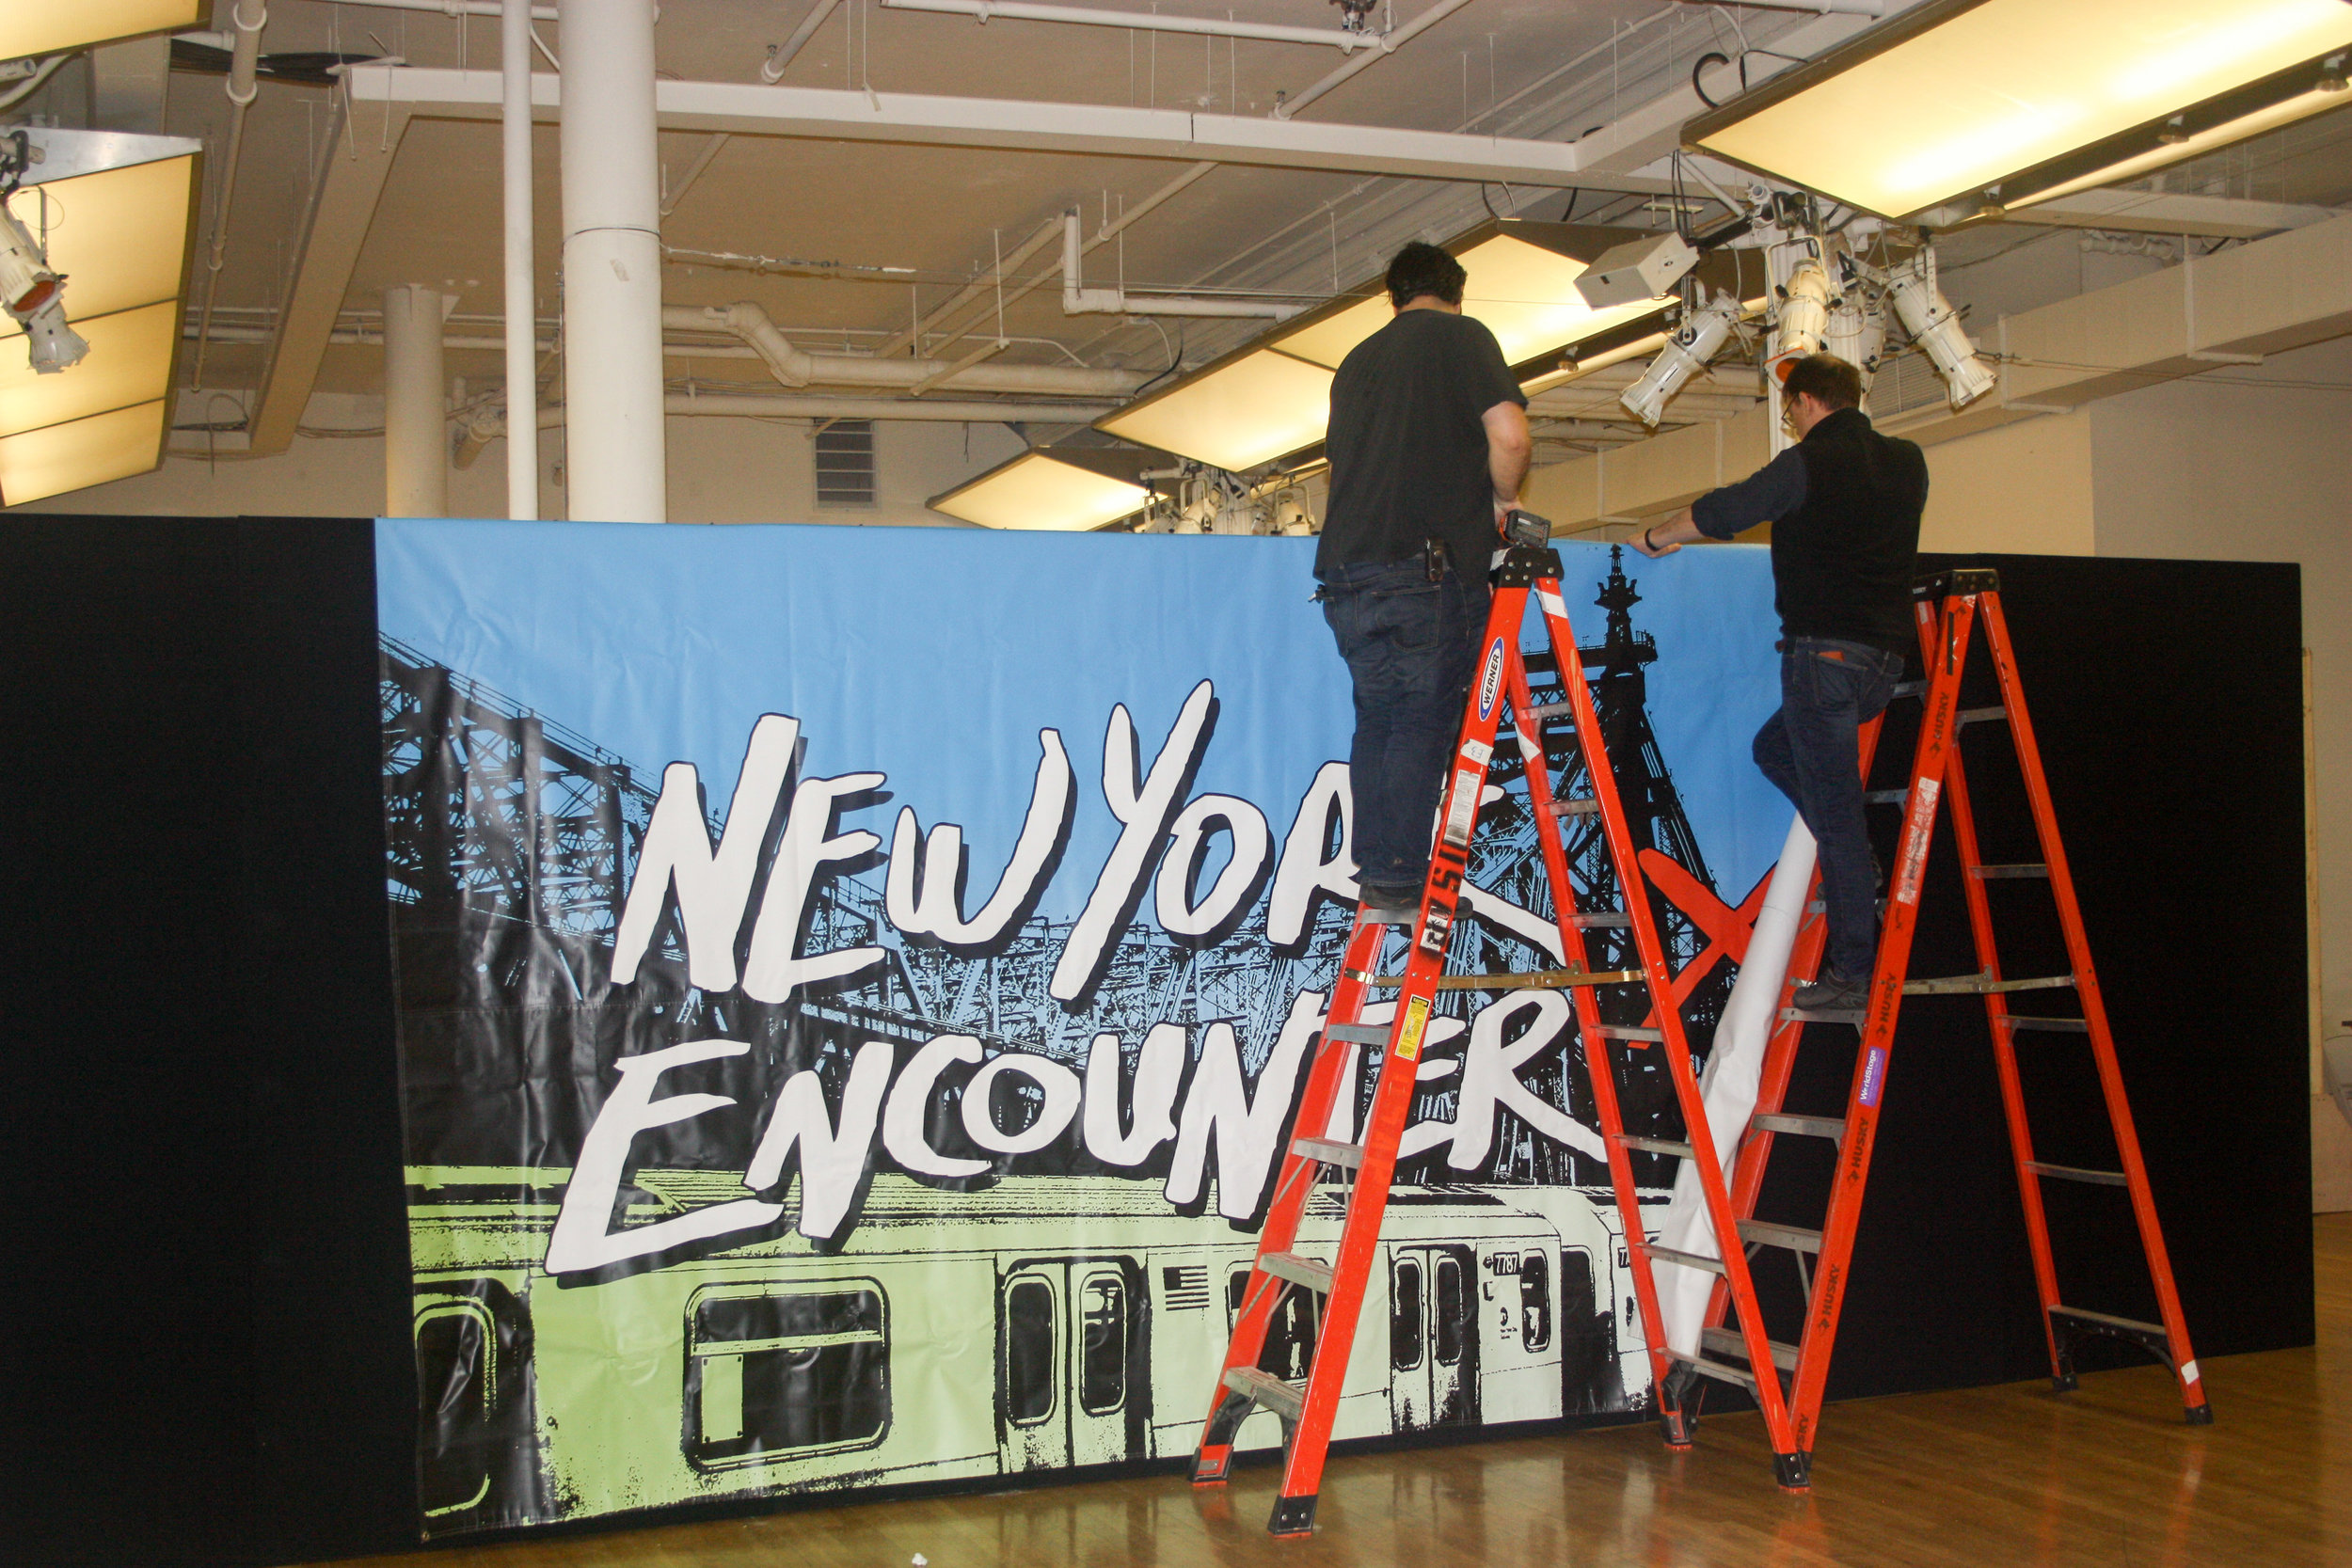 setting-up-the-2018-new-york-encounter_25796518528_o.jpg